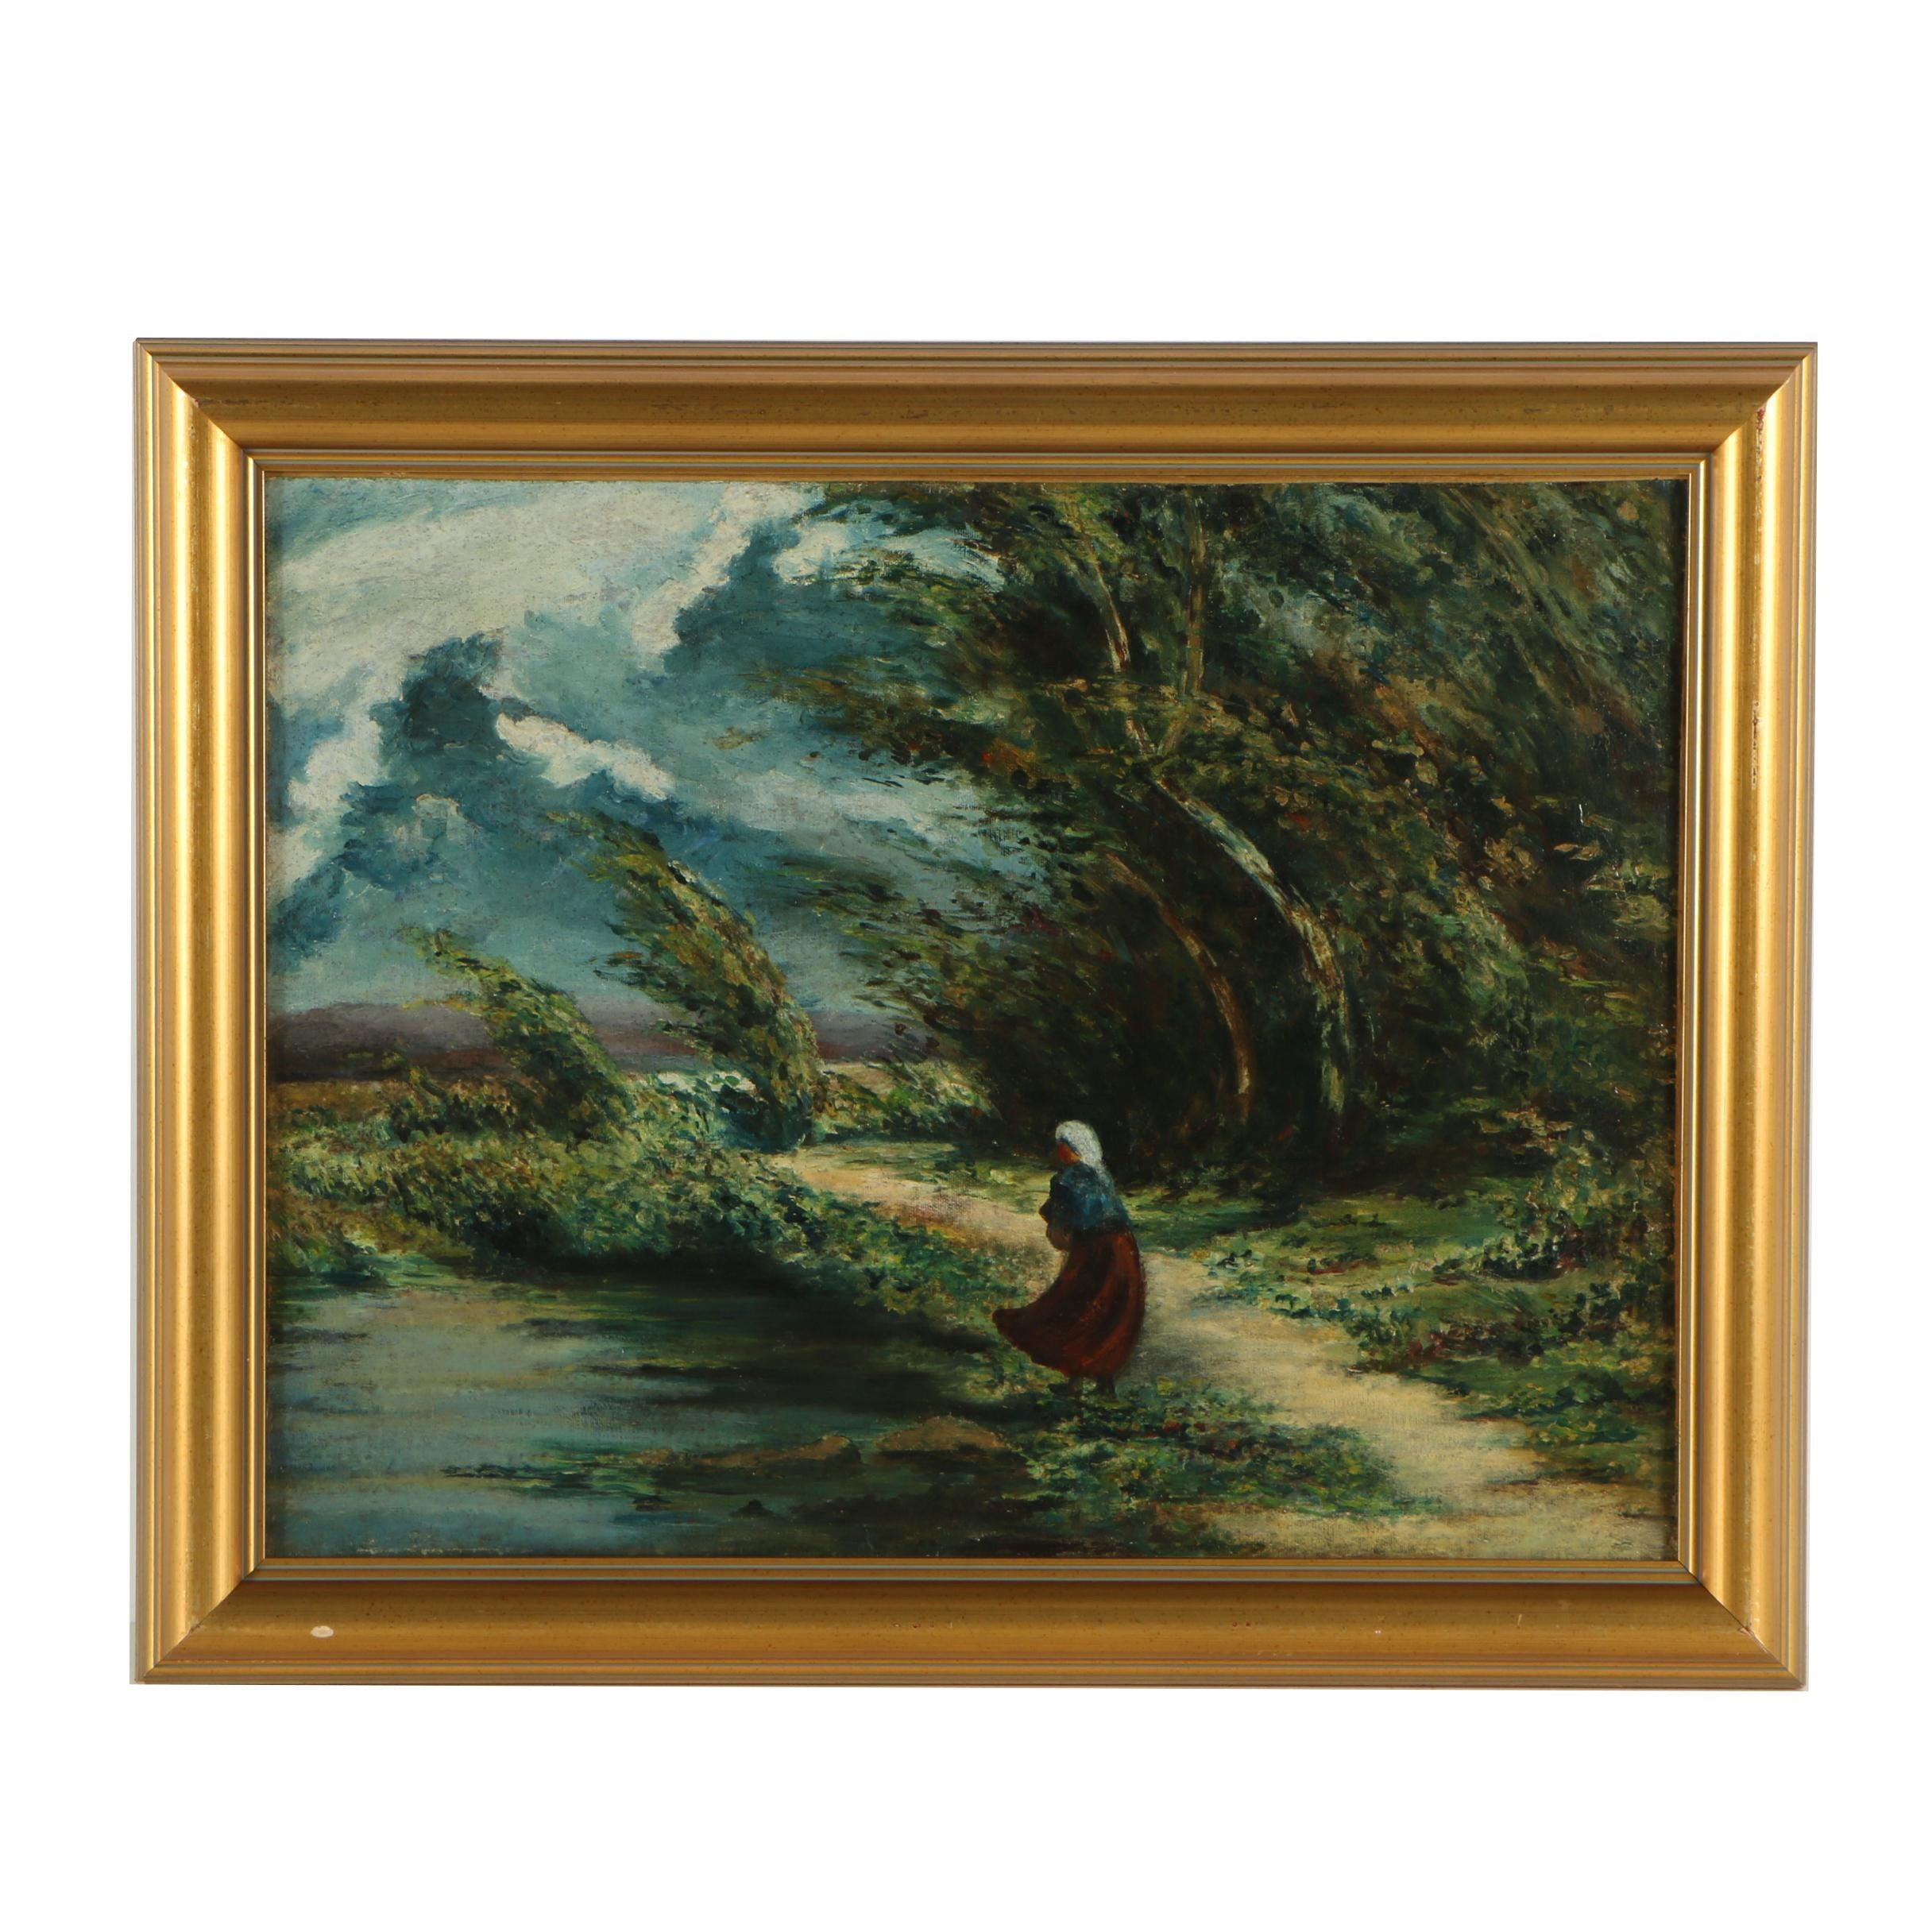 Oil Painting of Figure in Stormy Landscape